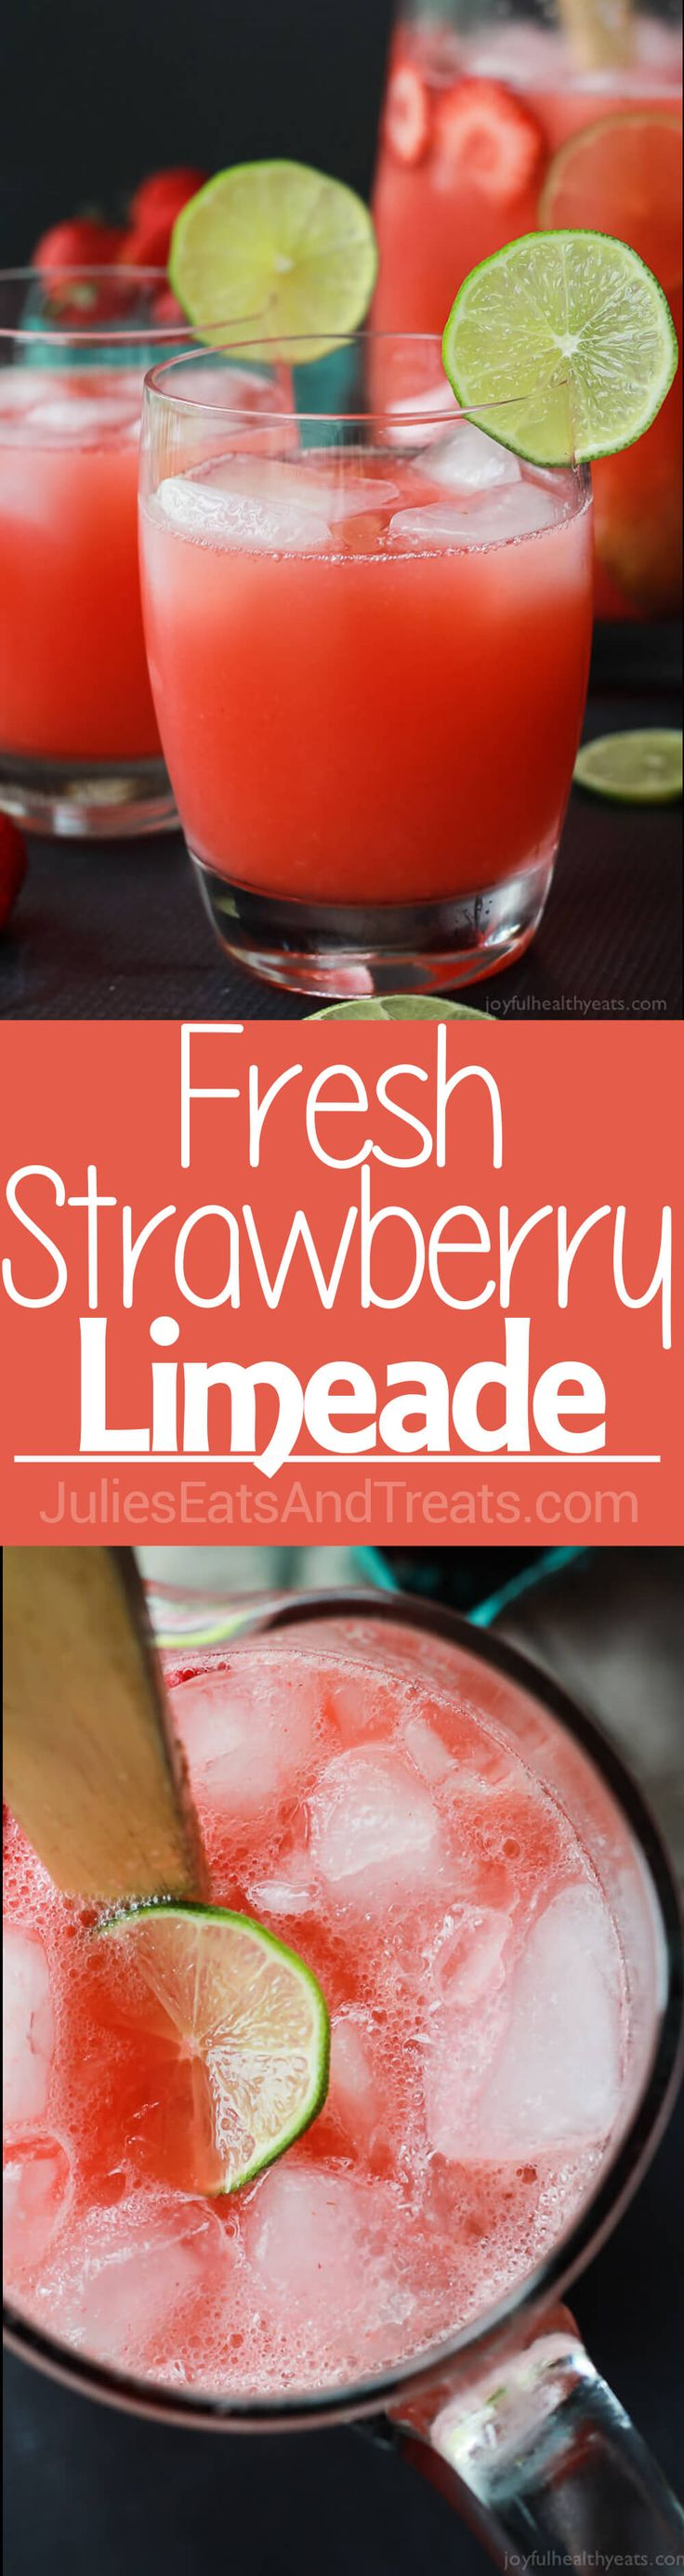 Fresh Strawberry Limeade made with 5 ingredients and done in 5 minutes! ~ http://www.julieseatsandtreats.com